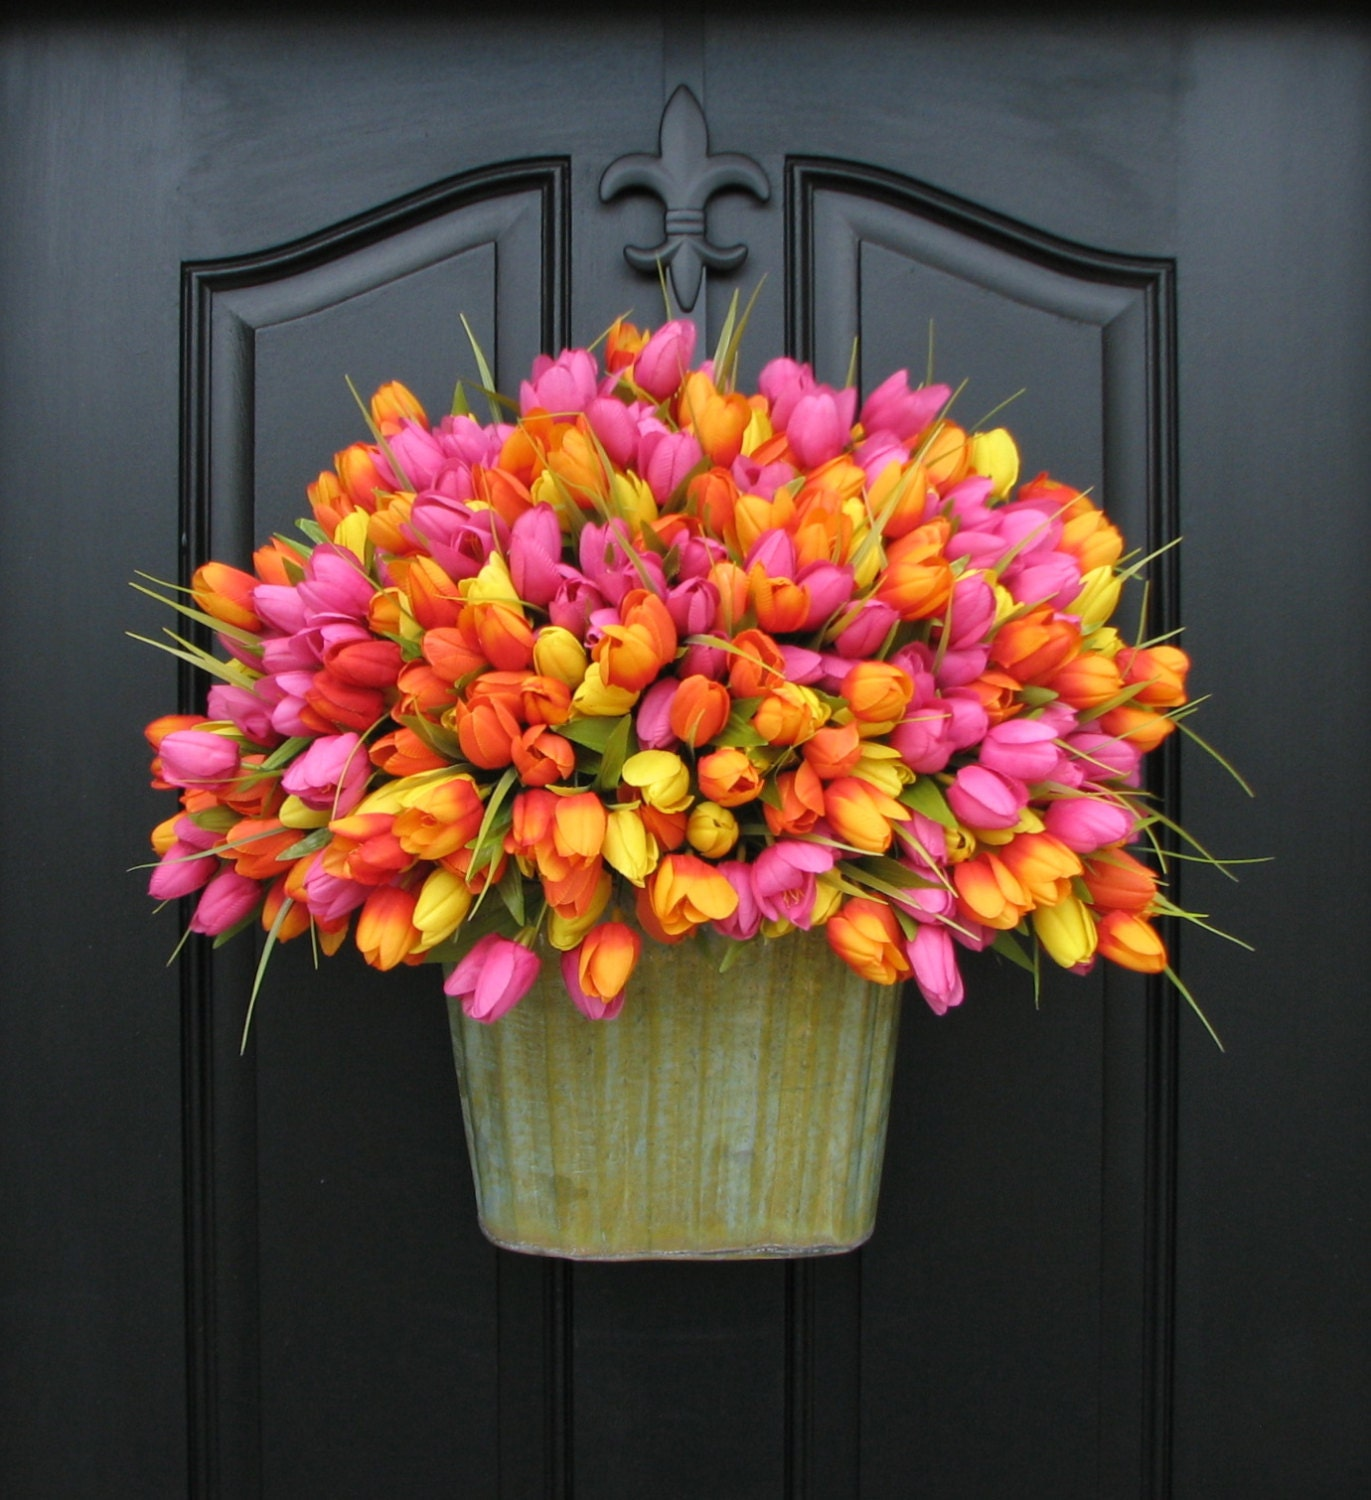 Country Front Door Decorations: Spring Tulips XL Front Door Decor Country Home Decor